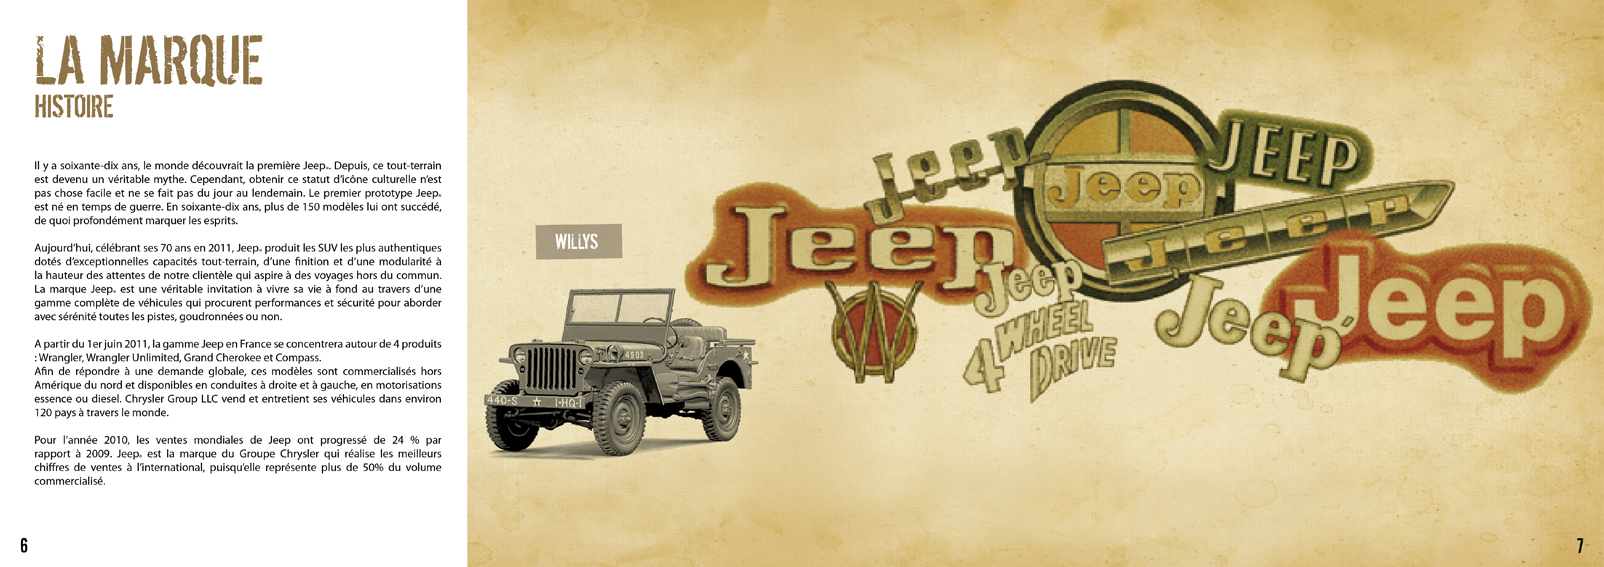 Guide_book_jeep_lilylafronde_4.jpg